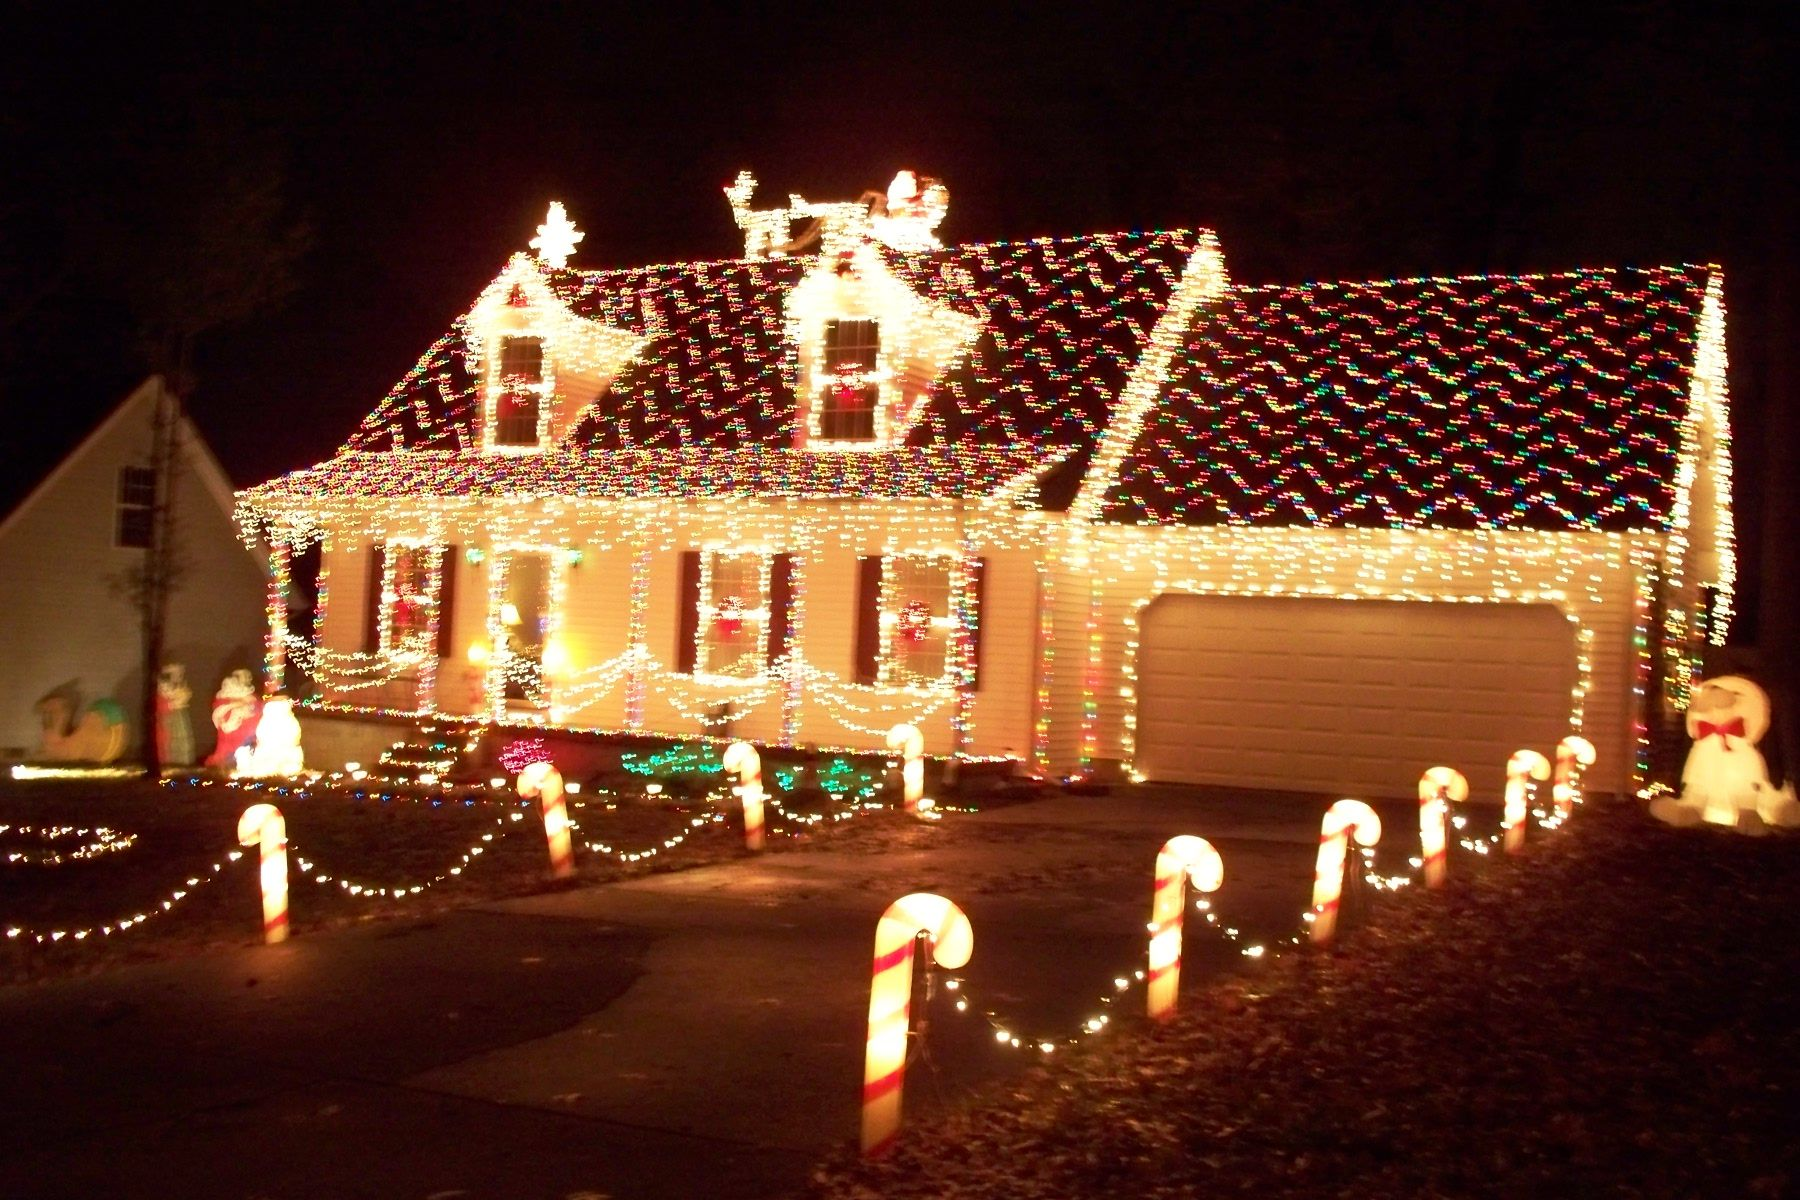 Best Christmas Light Displays And Decorations Where Are Which Neighborhoods In Your Area Have The Outdoor Holiday Lights